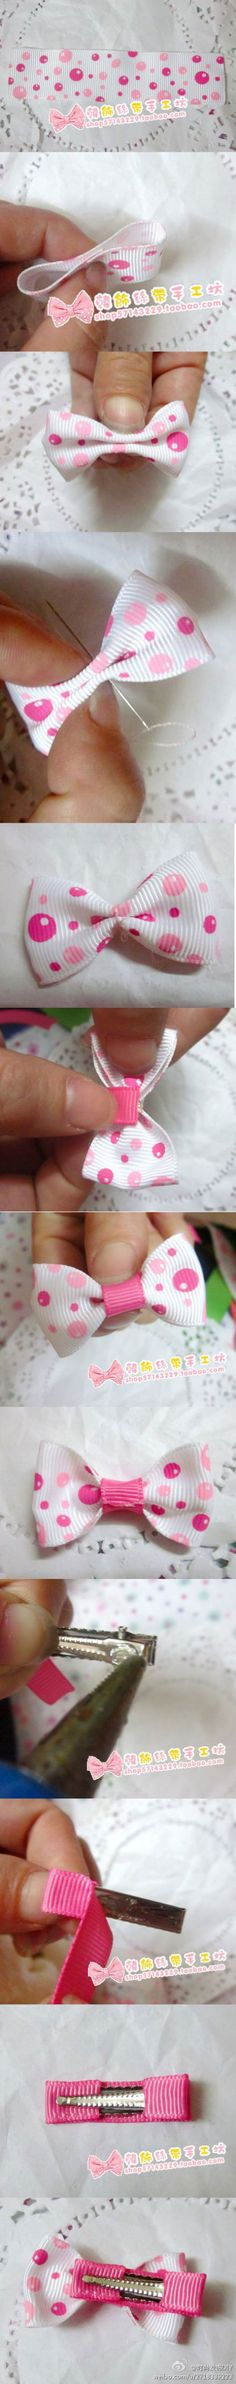 Could have saved alot of money years ago with this one! Small simple hair bow - can make into magnets Could have saved alot of money years ago with this one! Small simple hair bow - can make into magnets Diy Hair Bows, Diy Bow, Ribbon Crafts, Ribbon Bows, Ribbons, Diy Flowers, Fabric Flowers, Barrettes, Hairbows